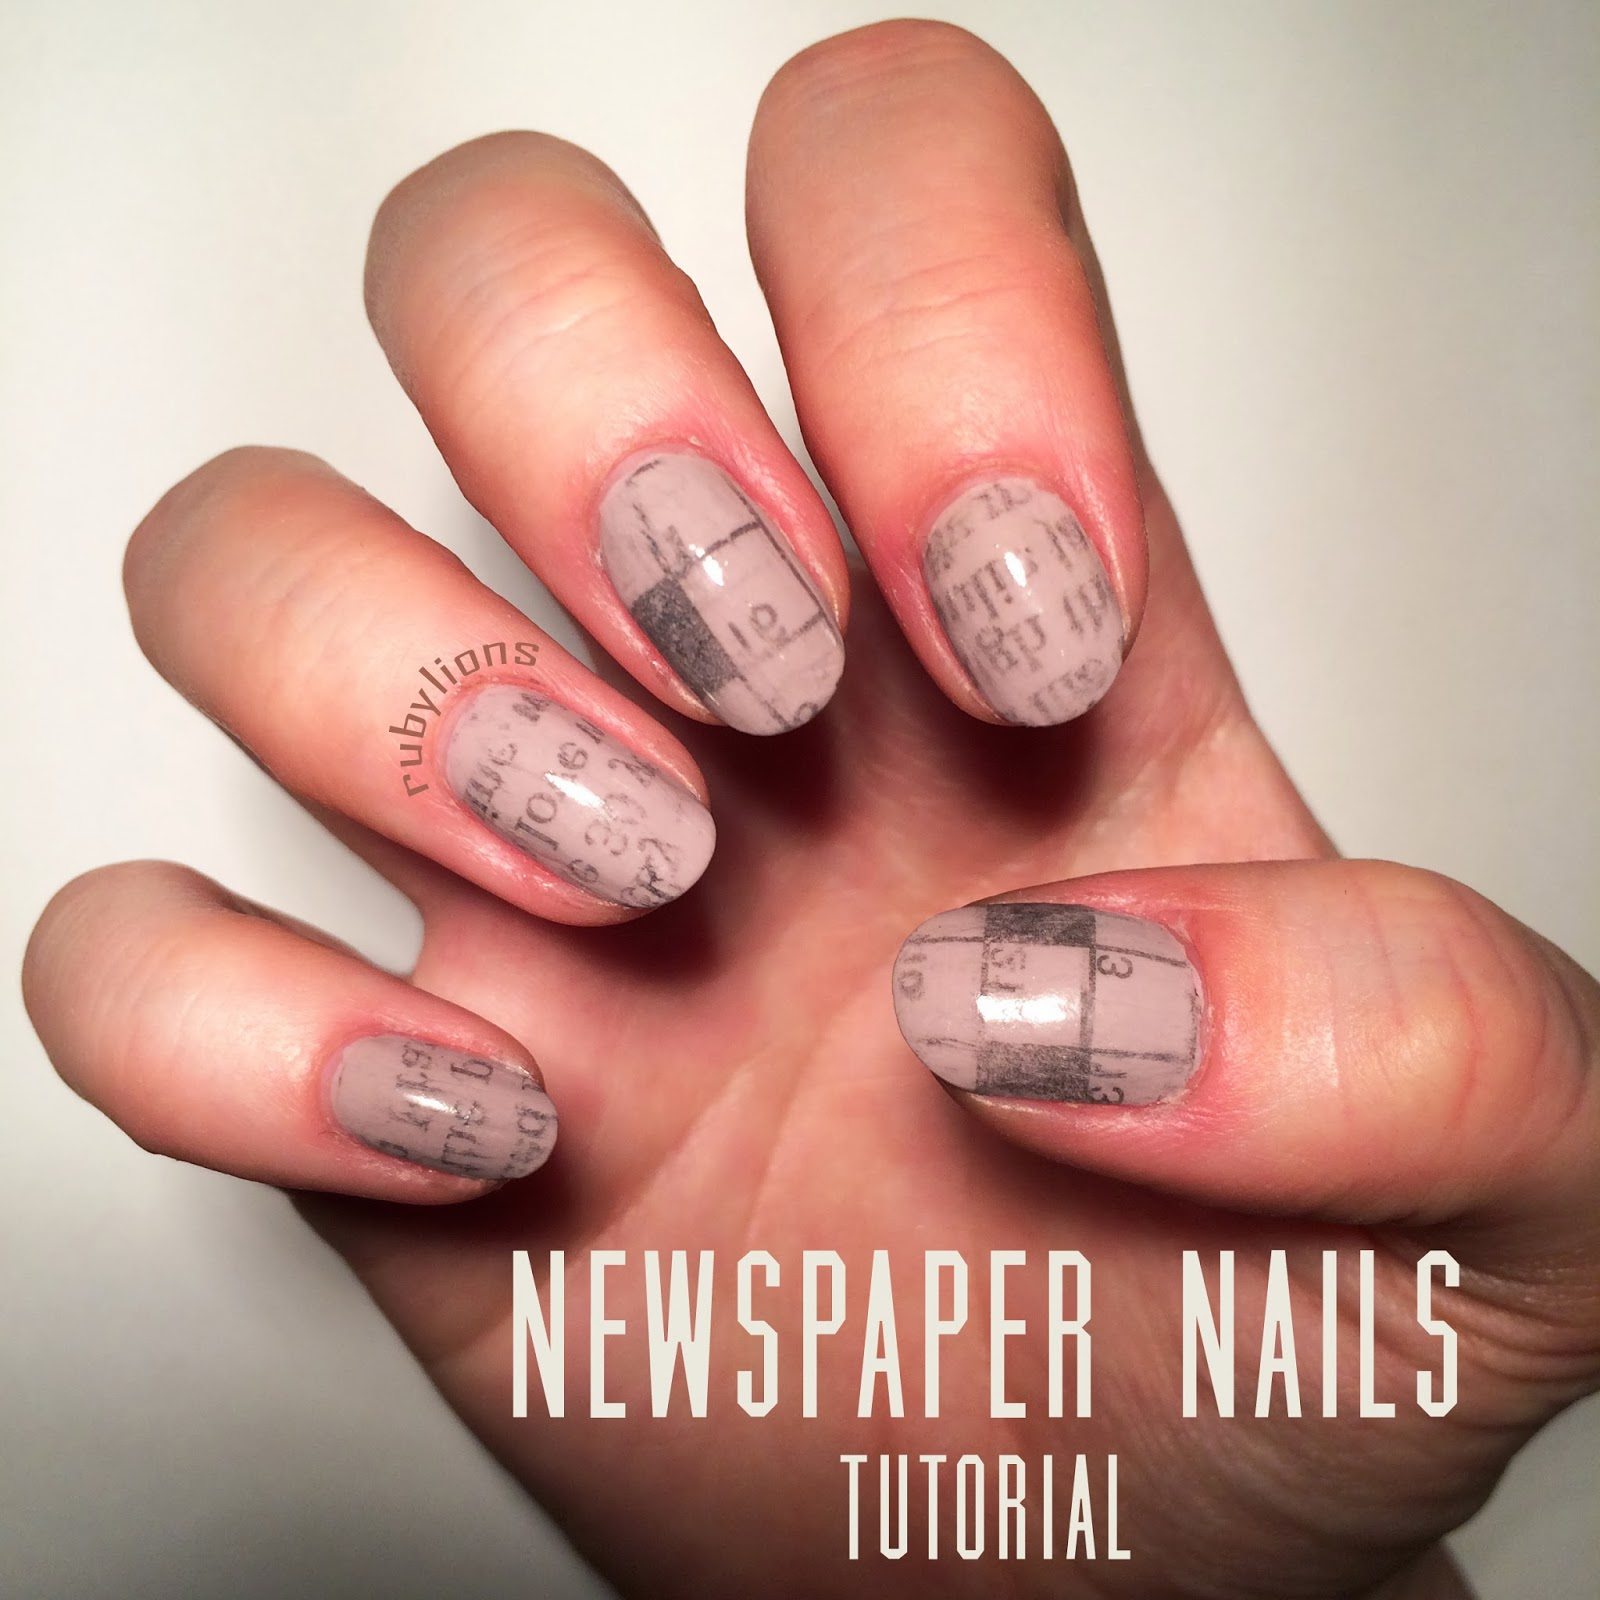 Tutorial: Newspaper and Crossword Nail Art | Claire Victoria